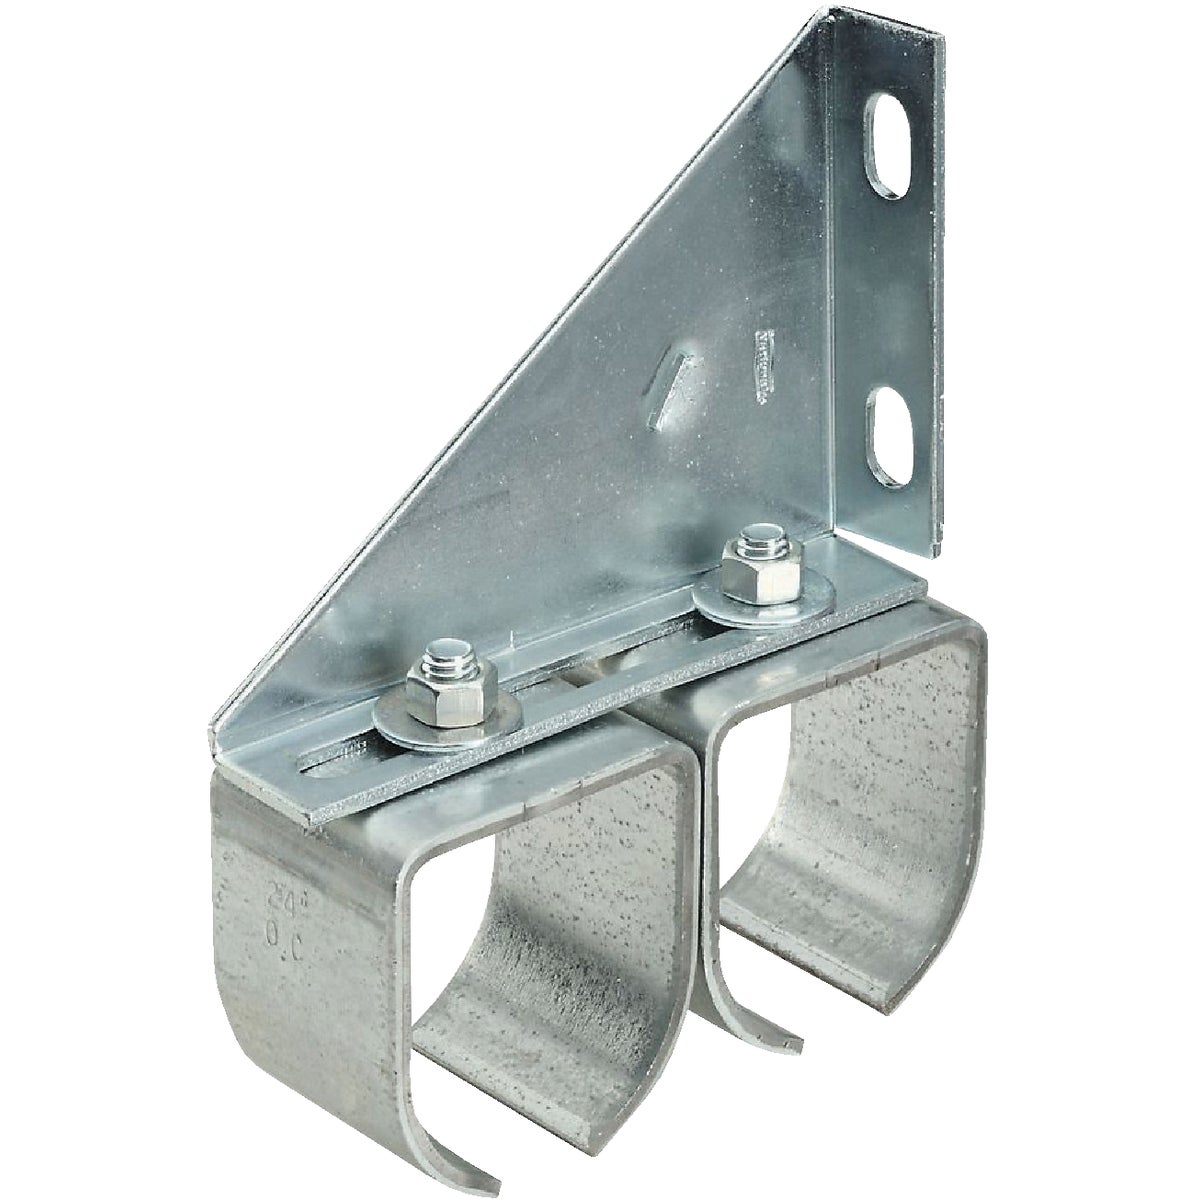 GALV ROUND RAIL BRACKET - N193904 by National Mfg Co